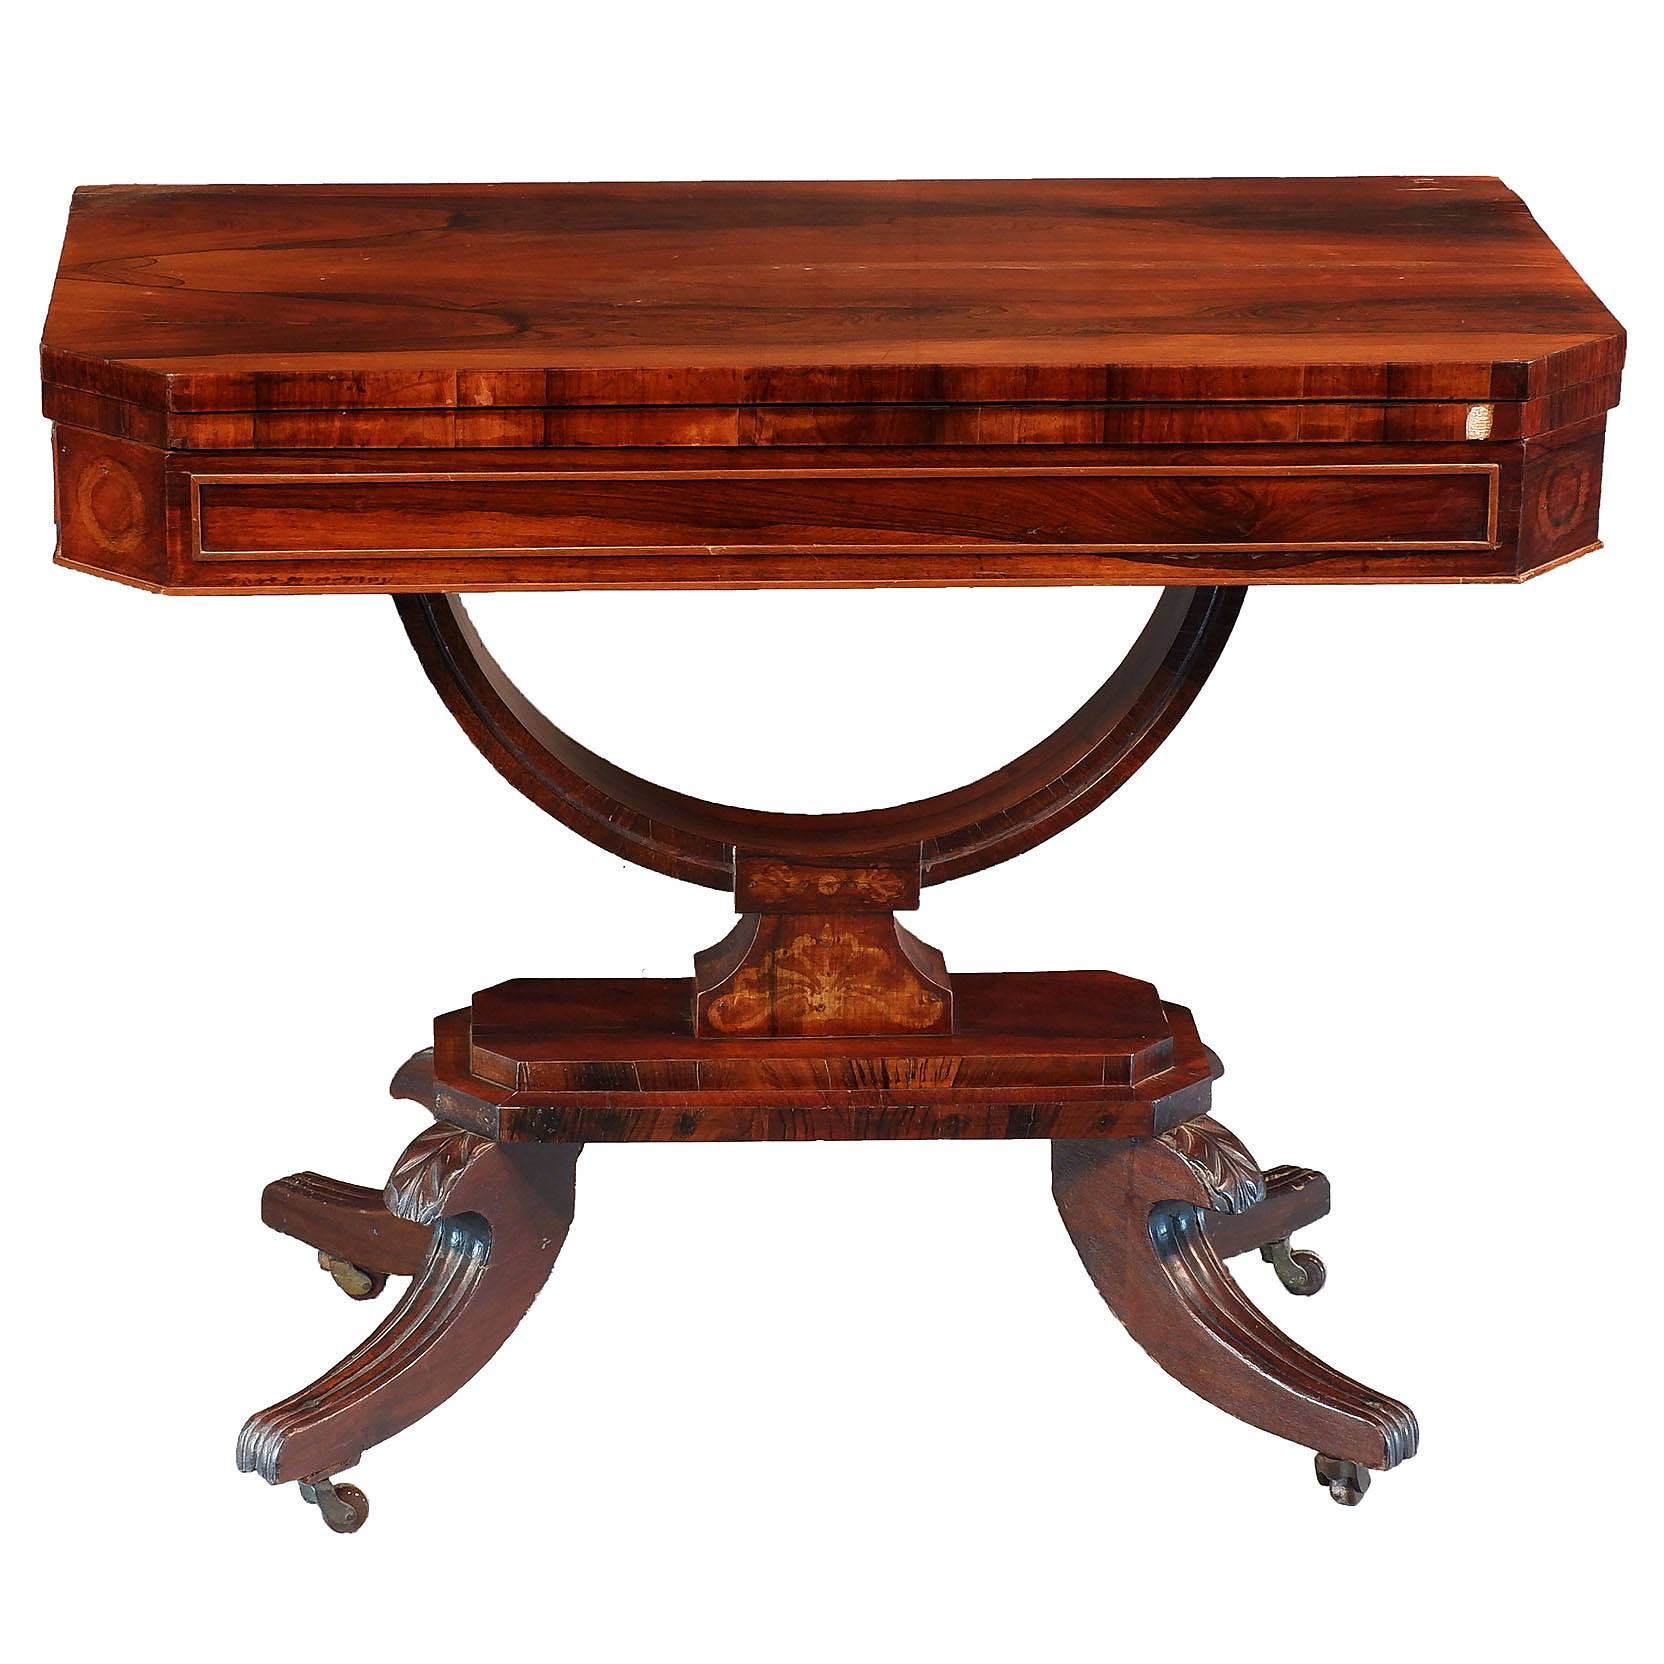 'Regency Brazilian Rosewood Foldover Card Table Circa 1820'